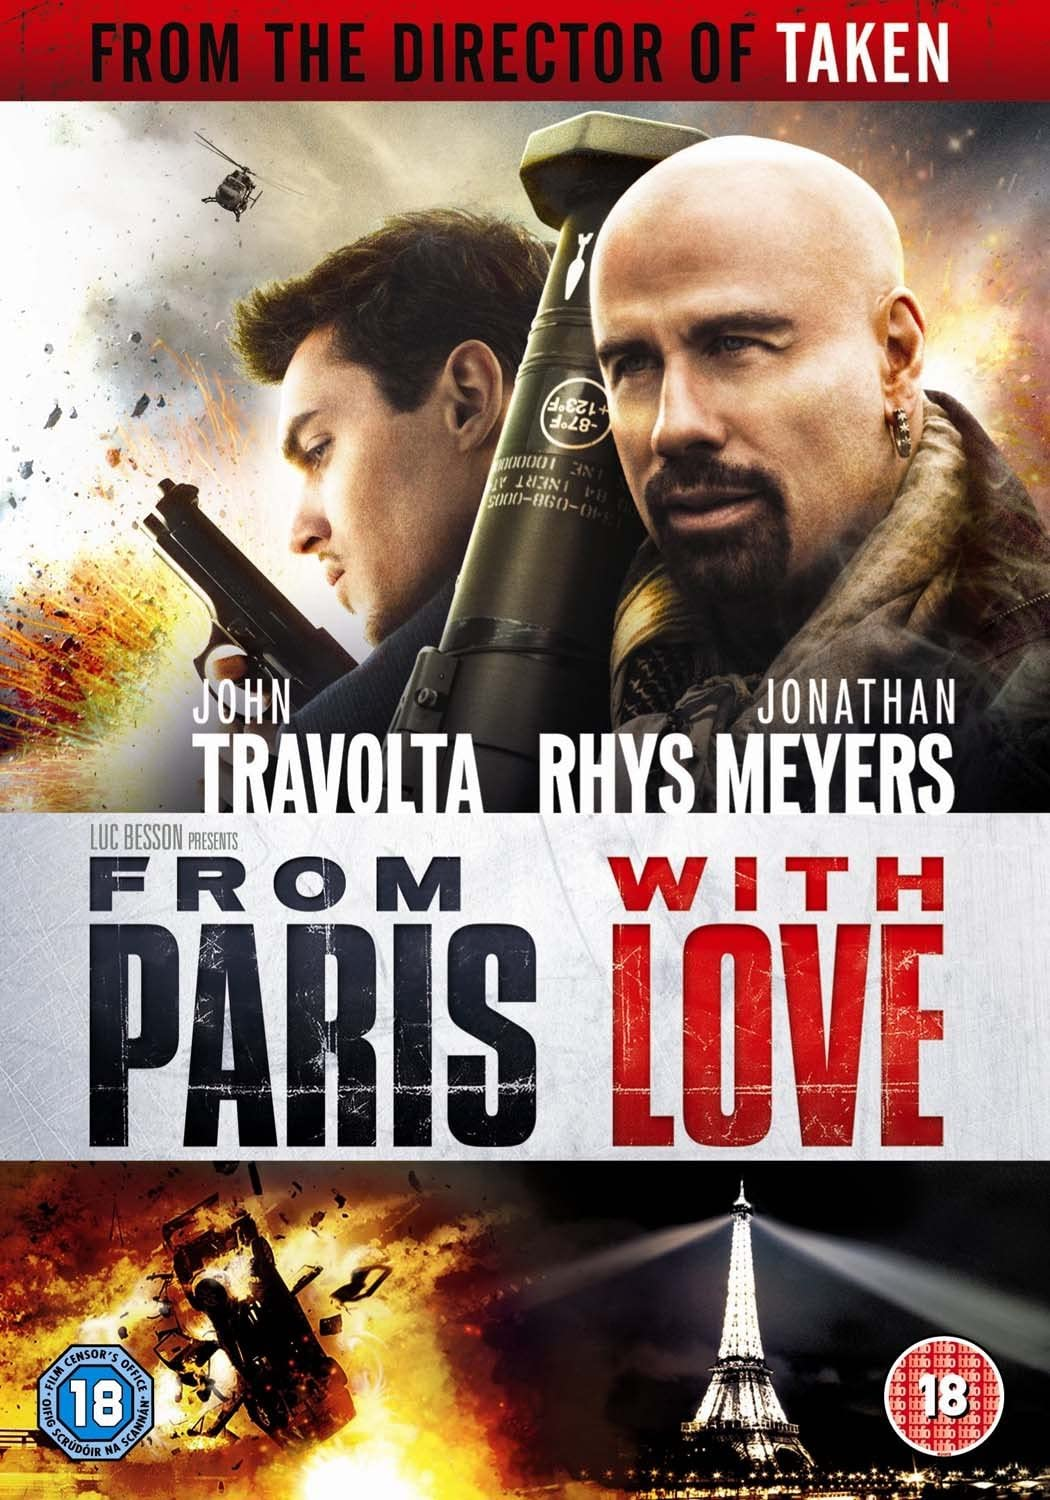 From Paris With Love [DVD] [2010]: Amazon.co.uk: John Travolta ...